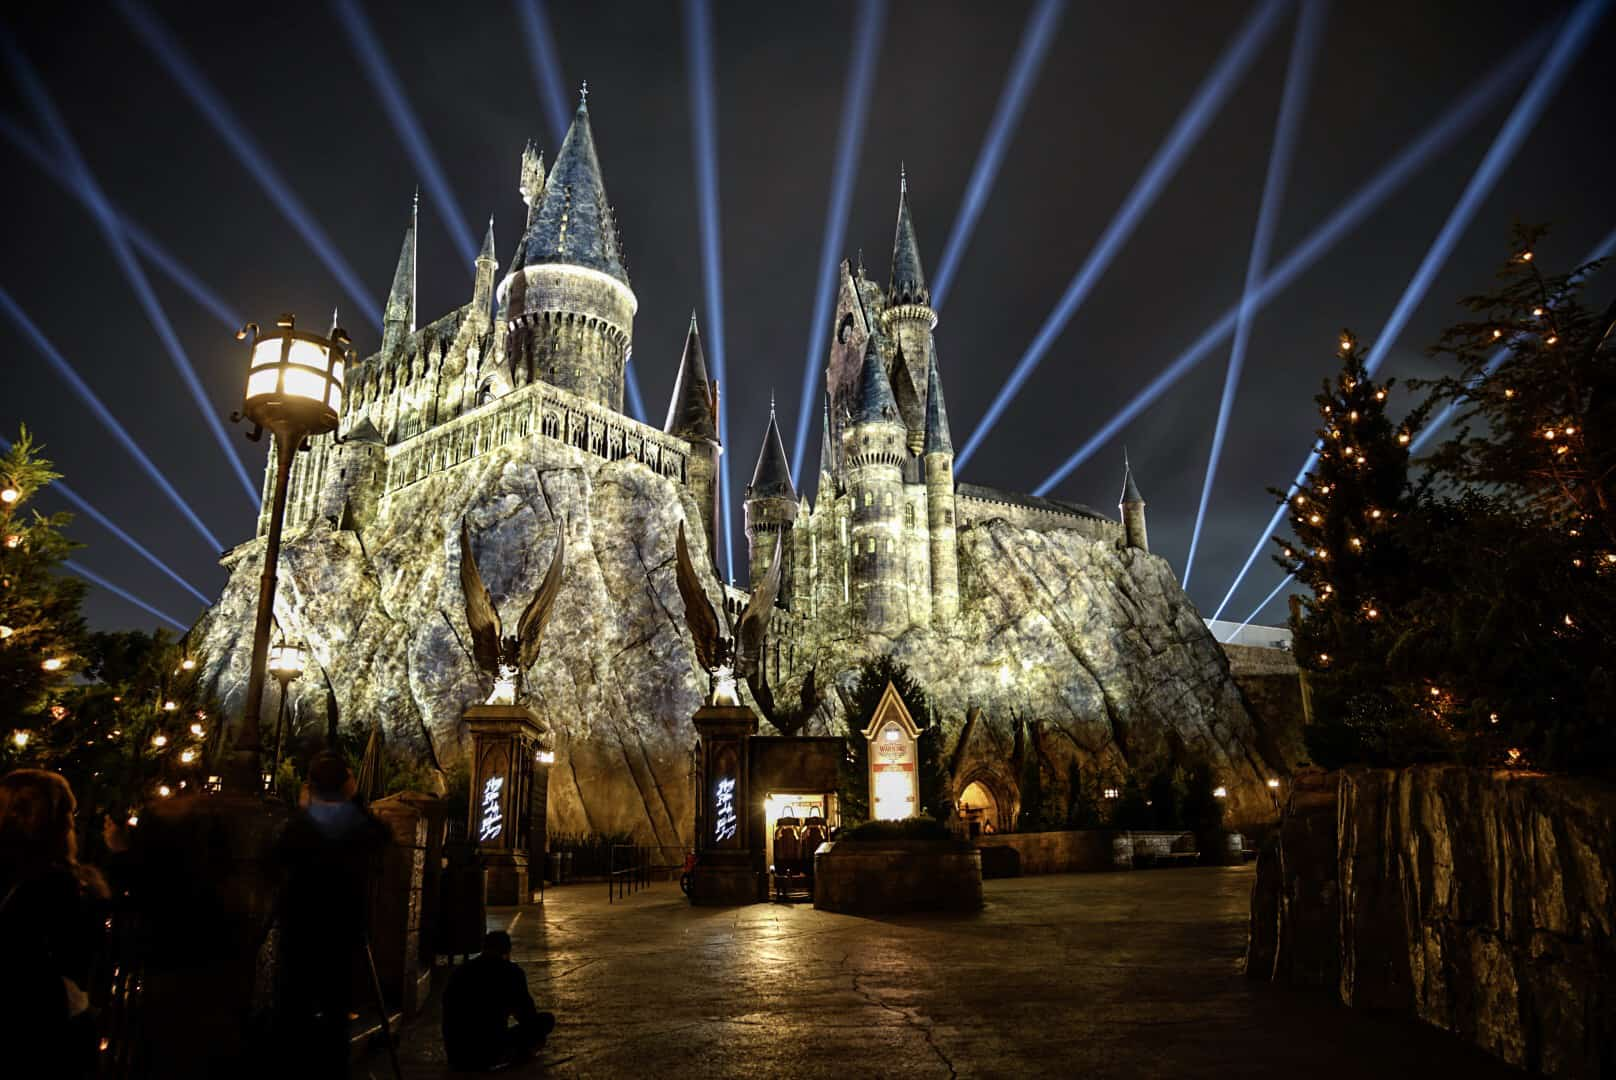 Castle Island Halloween 2020 The Nighttime Lights at Hogwarts Castle at Universal's Islands of